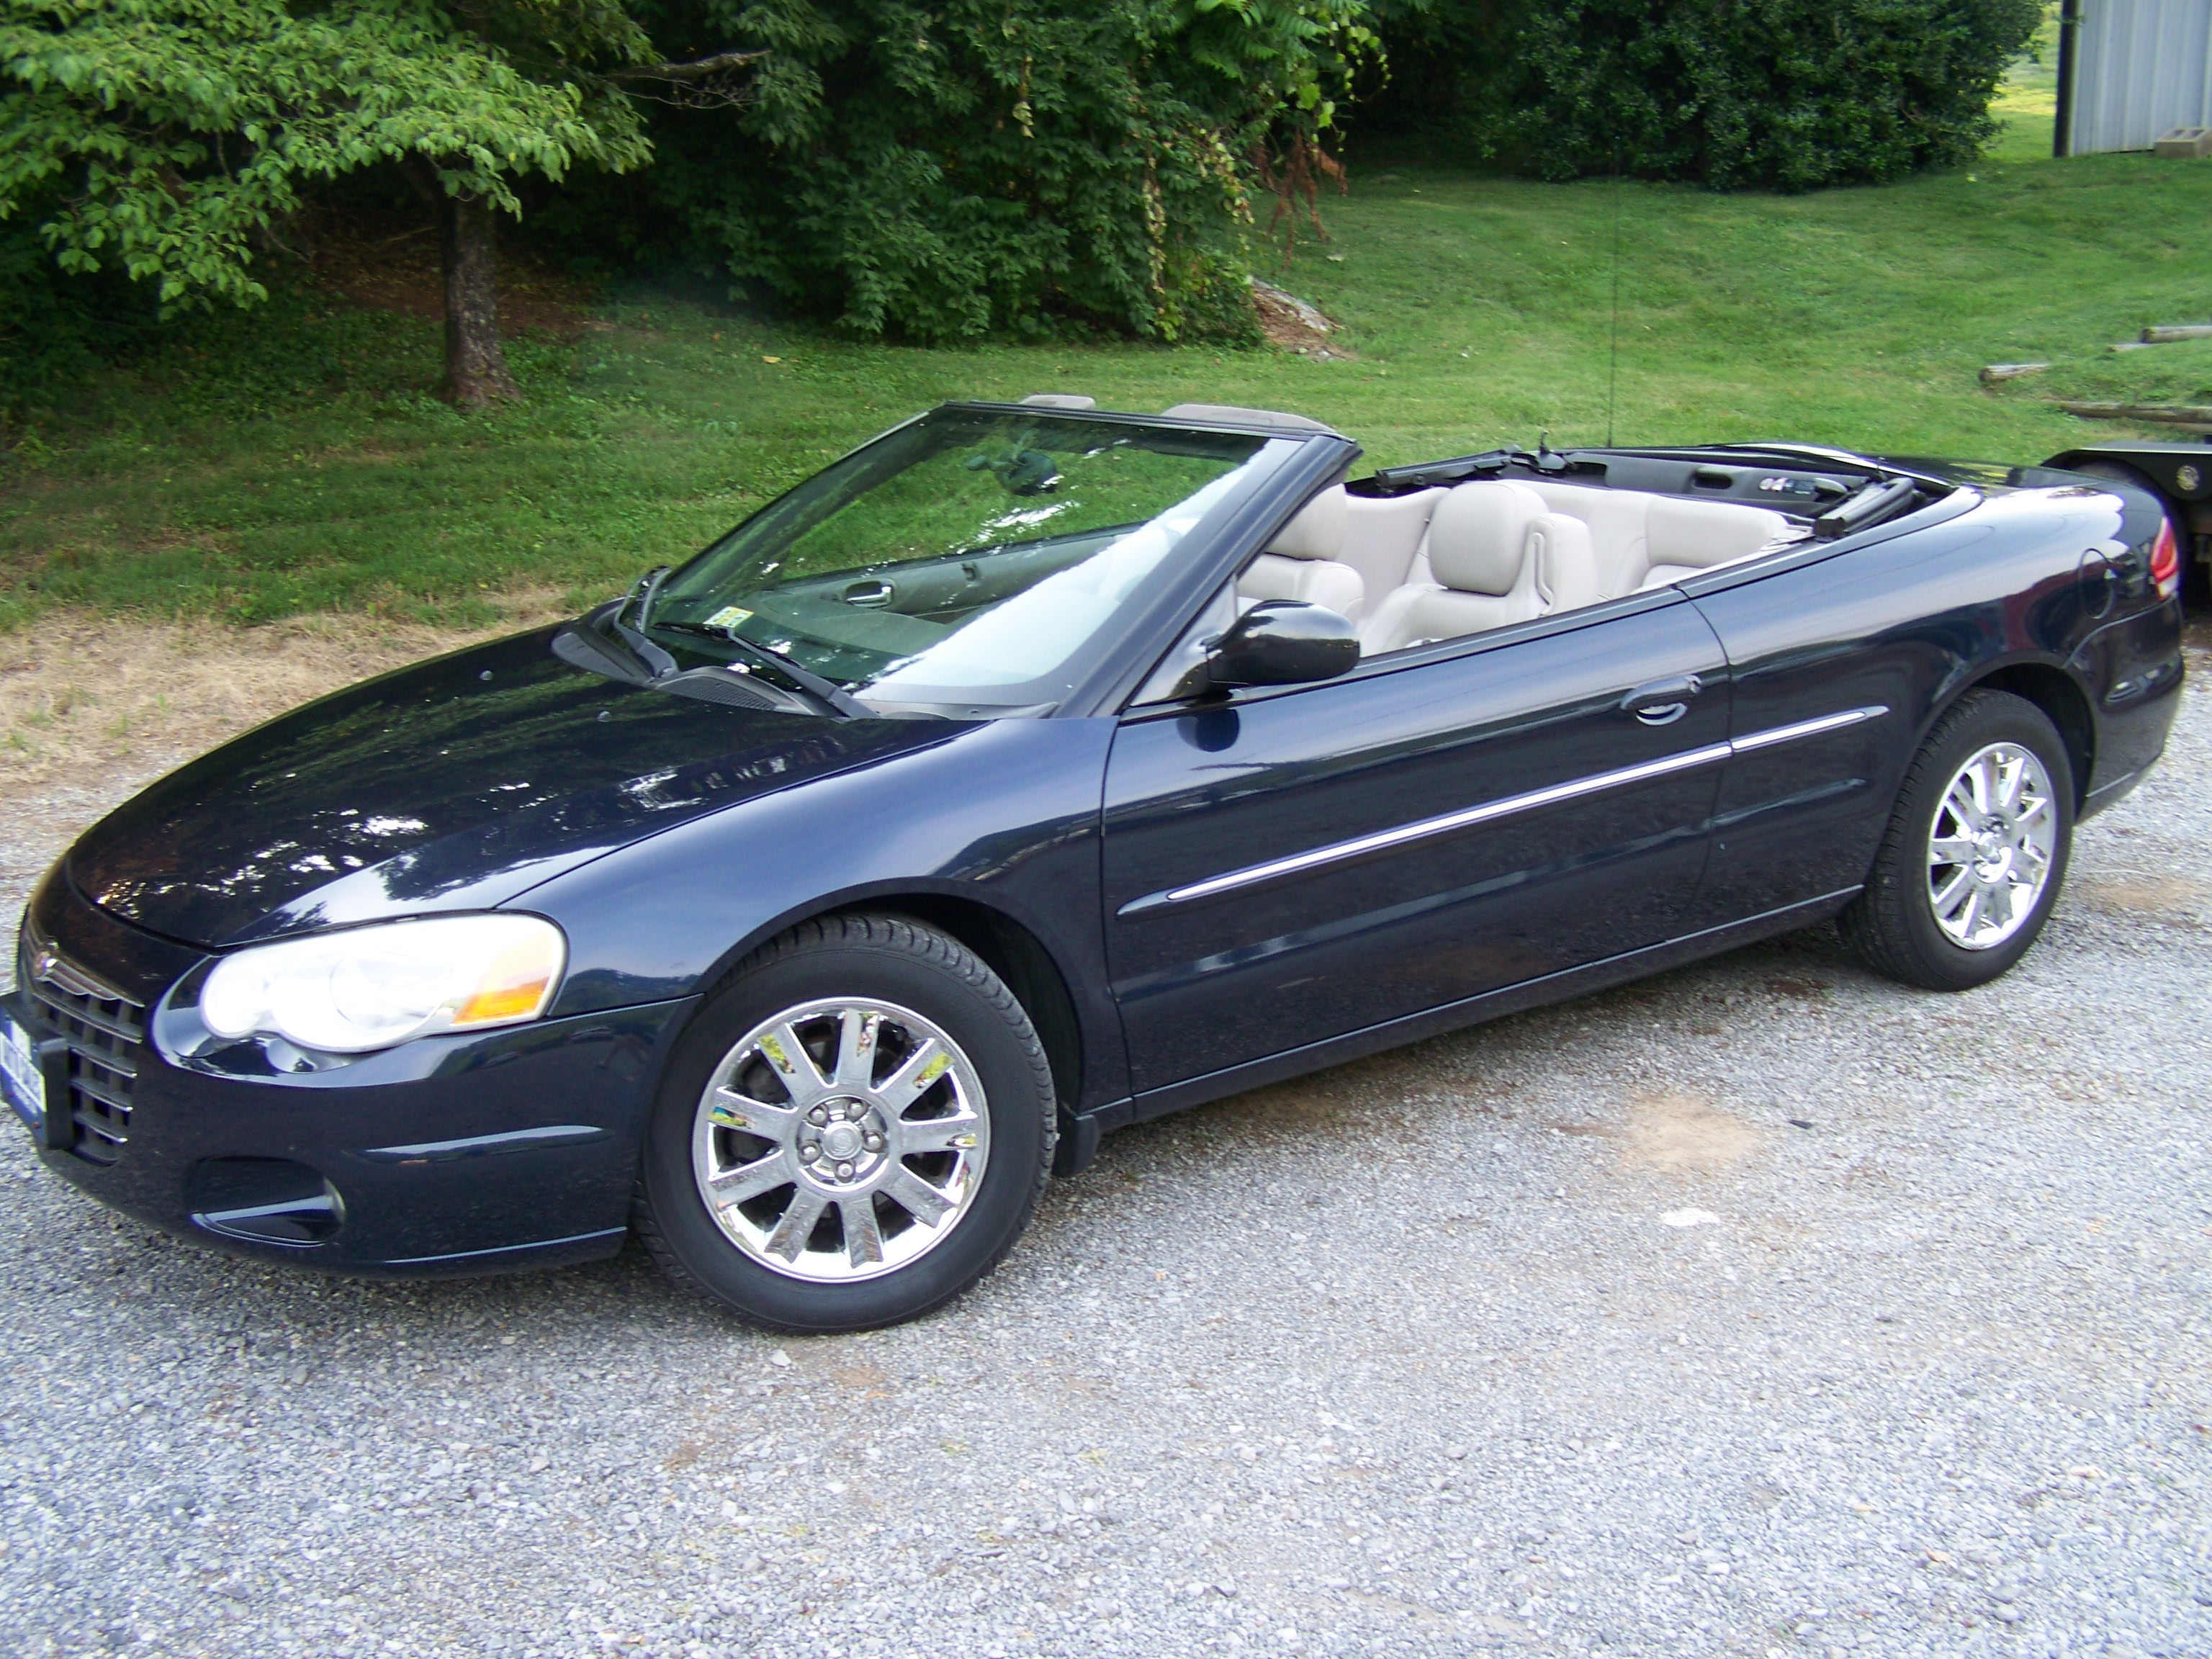 2004 Chrysler Sebring Blue | 200+ Interior and Exterior Images